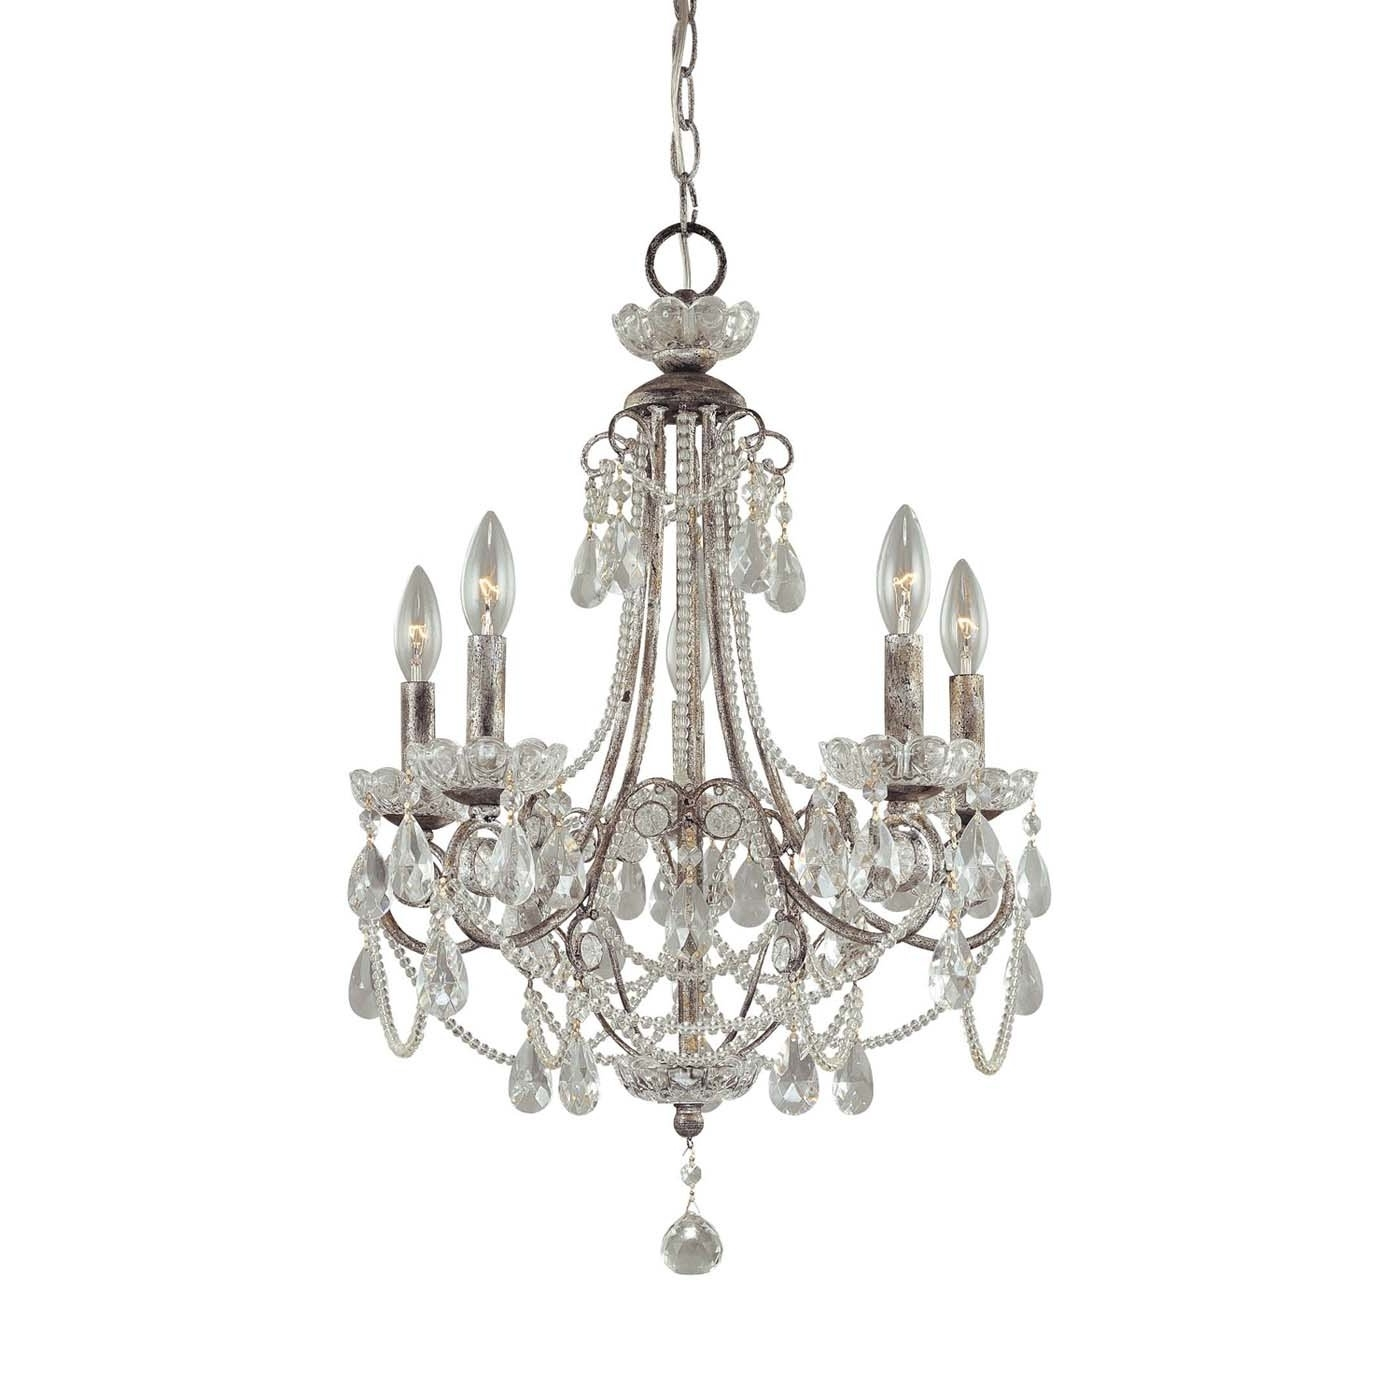 Small Glass Chandeliers Pertaining To Latest Chandelier: Extraordinary Small Chandeliers For Bedrooms Mini (View 9 of 15)